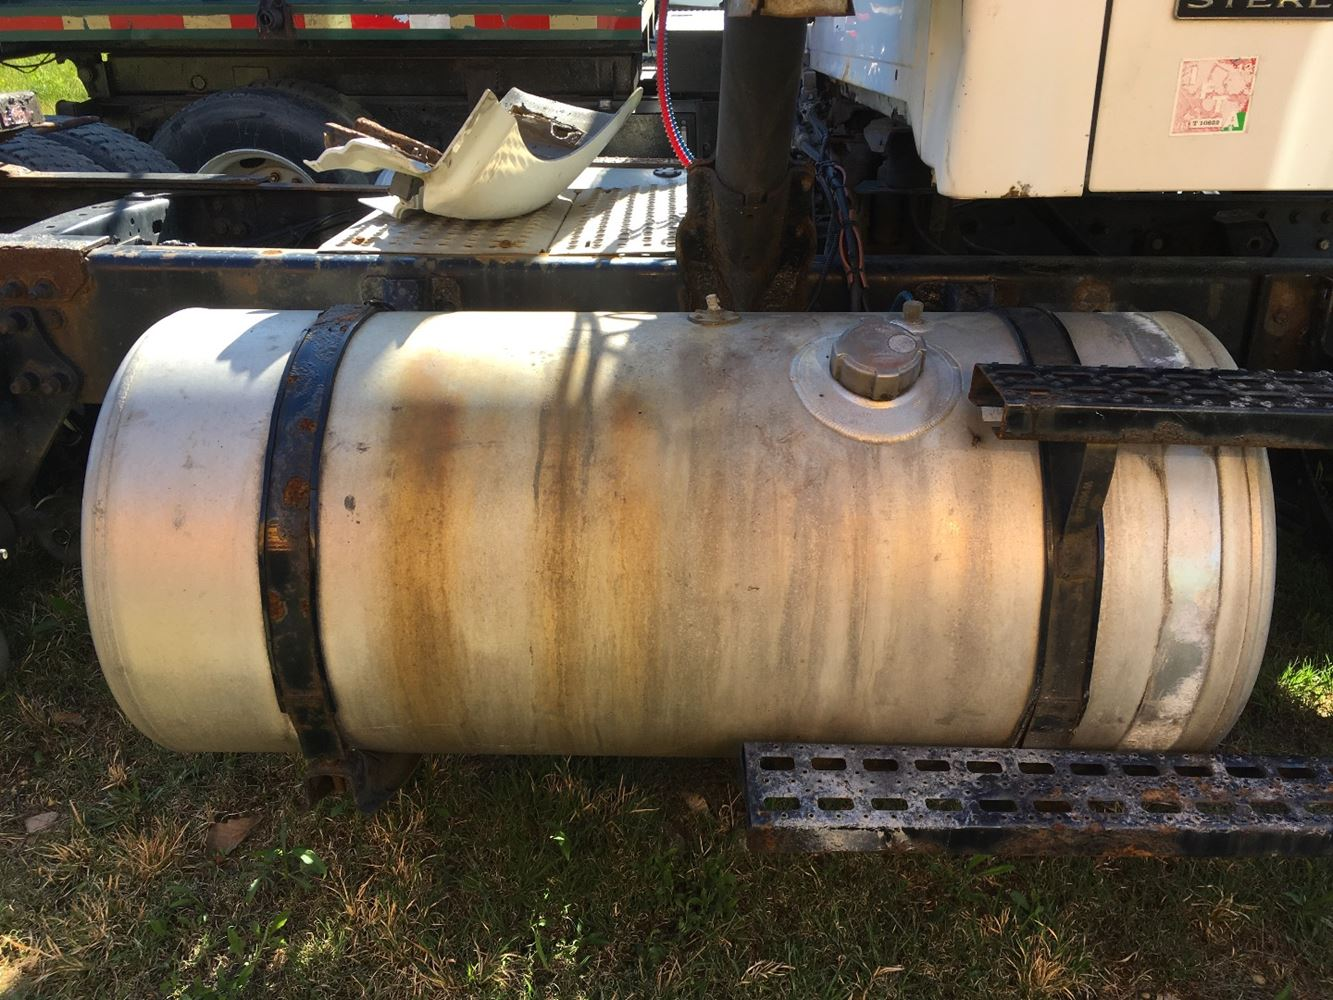 2003 STERLING A9500 FUEL TANK TRUCK PARTS #685123